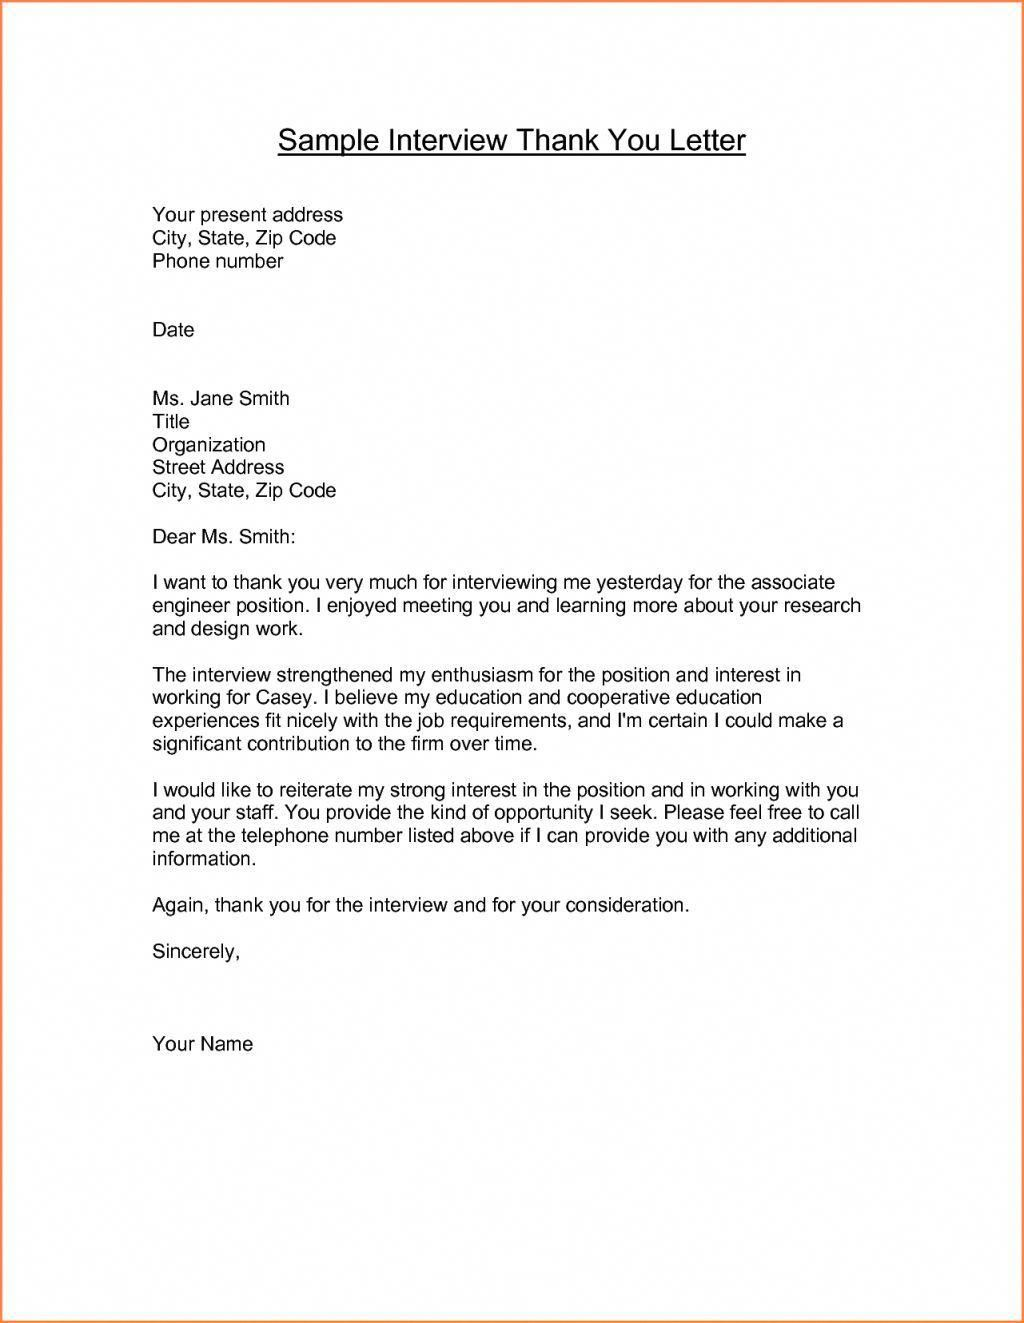 Sample Thank You Letter For Interview Email Letter Format